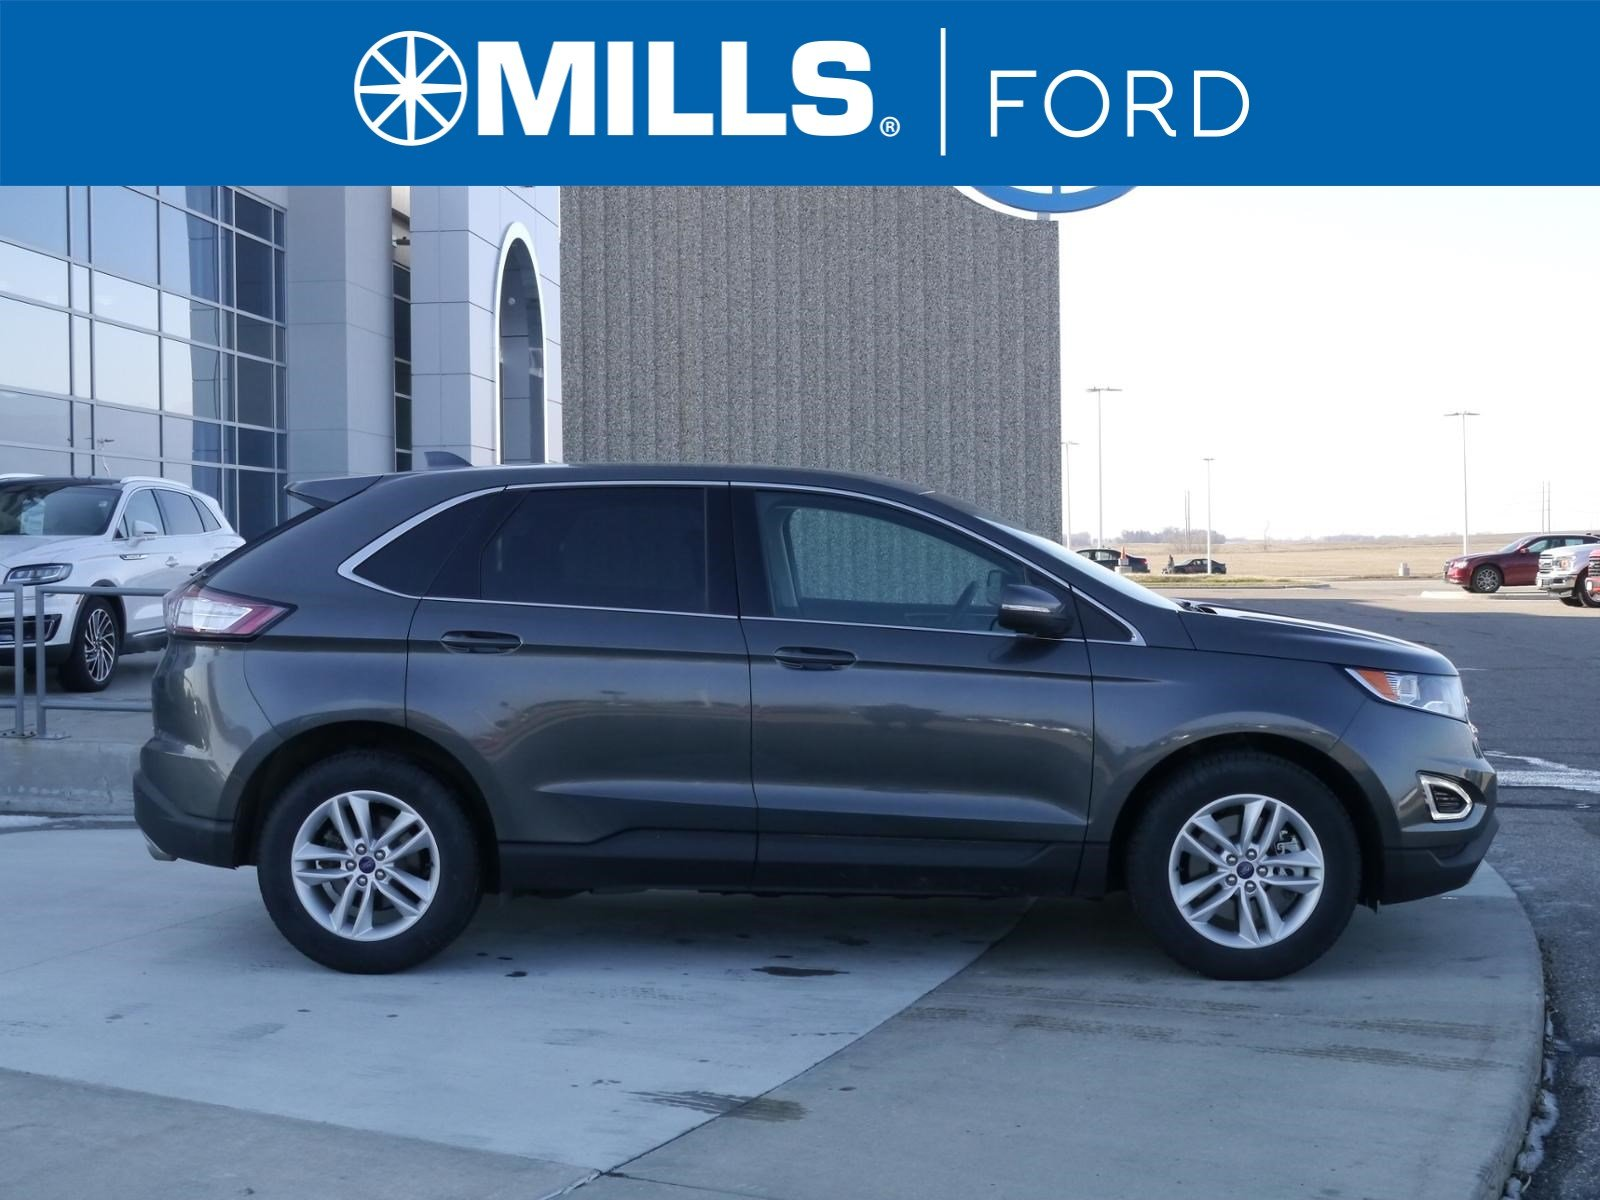 2015 Ford Edge SEL SUV for sale in Willmar, MN